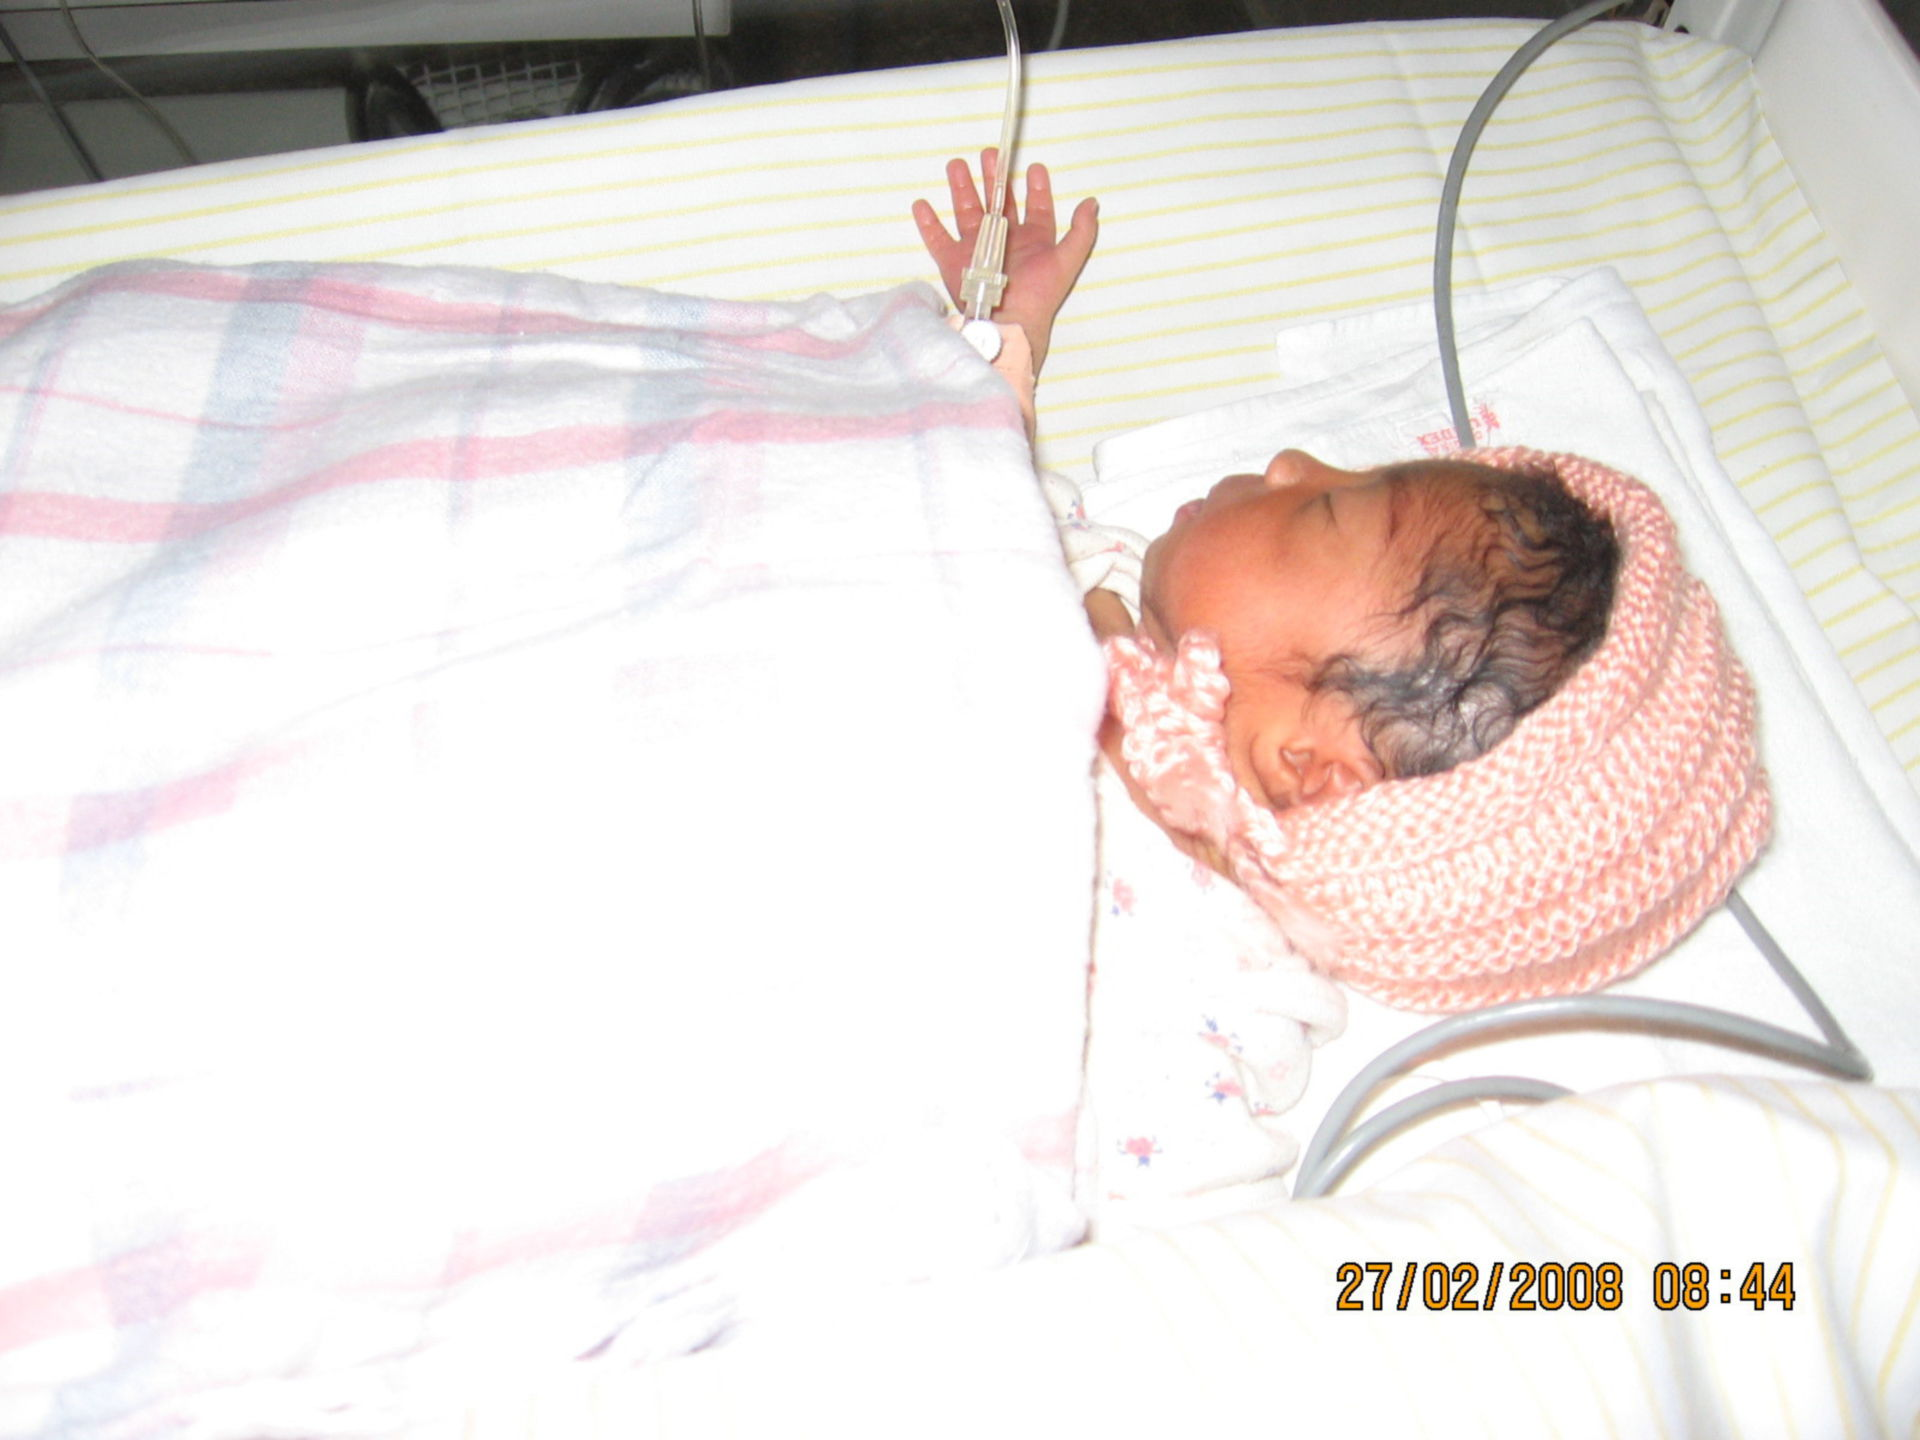 Preterm birth